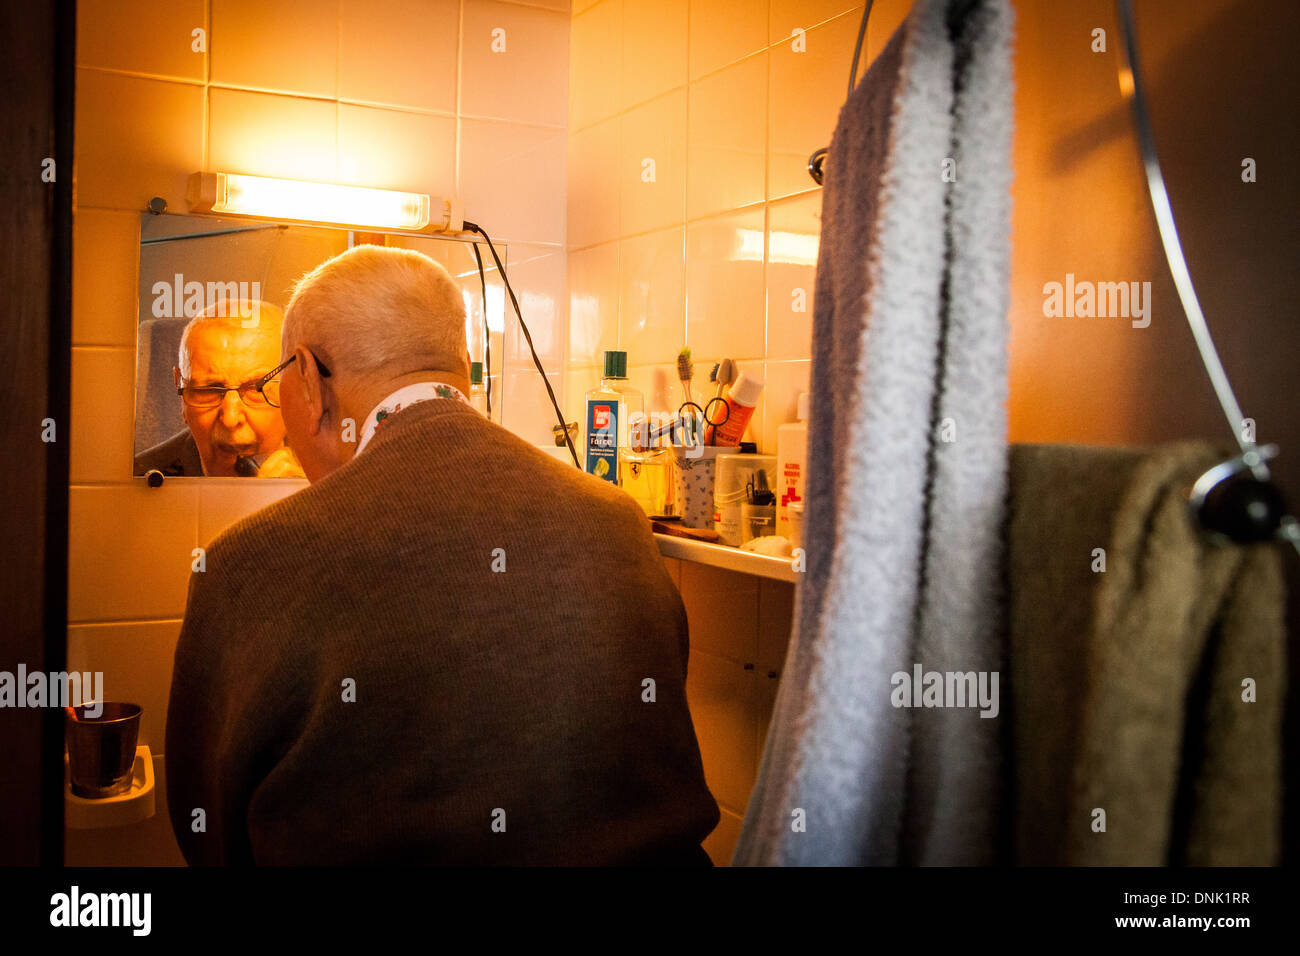 ILLUSTRATION OF AGEING AT HOME, ELDERLY PERSON AT HOME WASHING UP IN THE BATHROOM - Stock Image